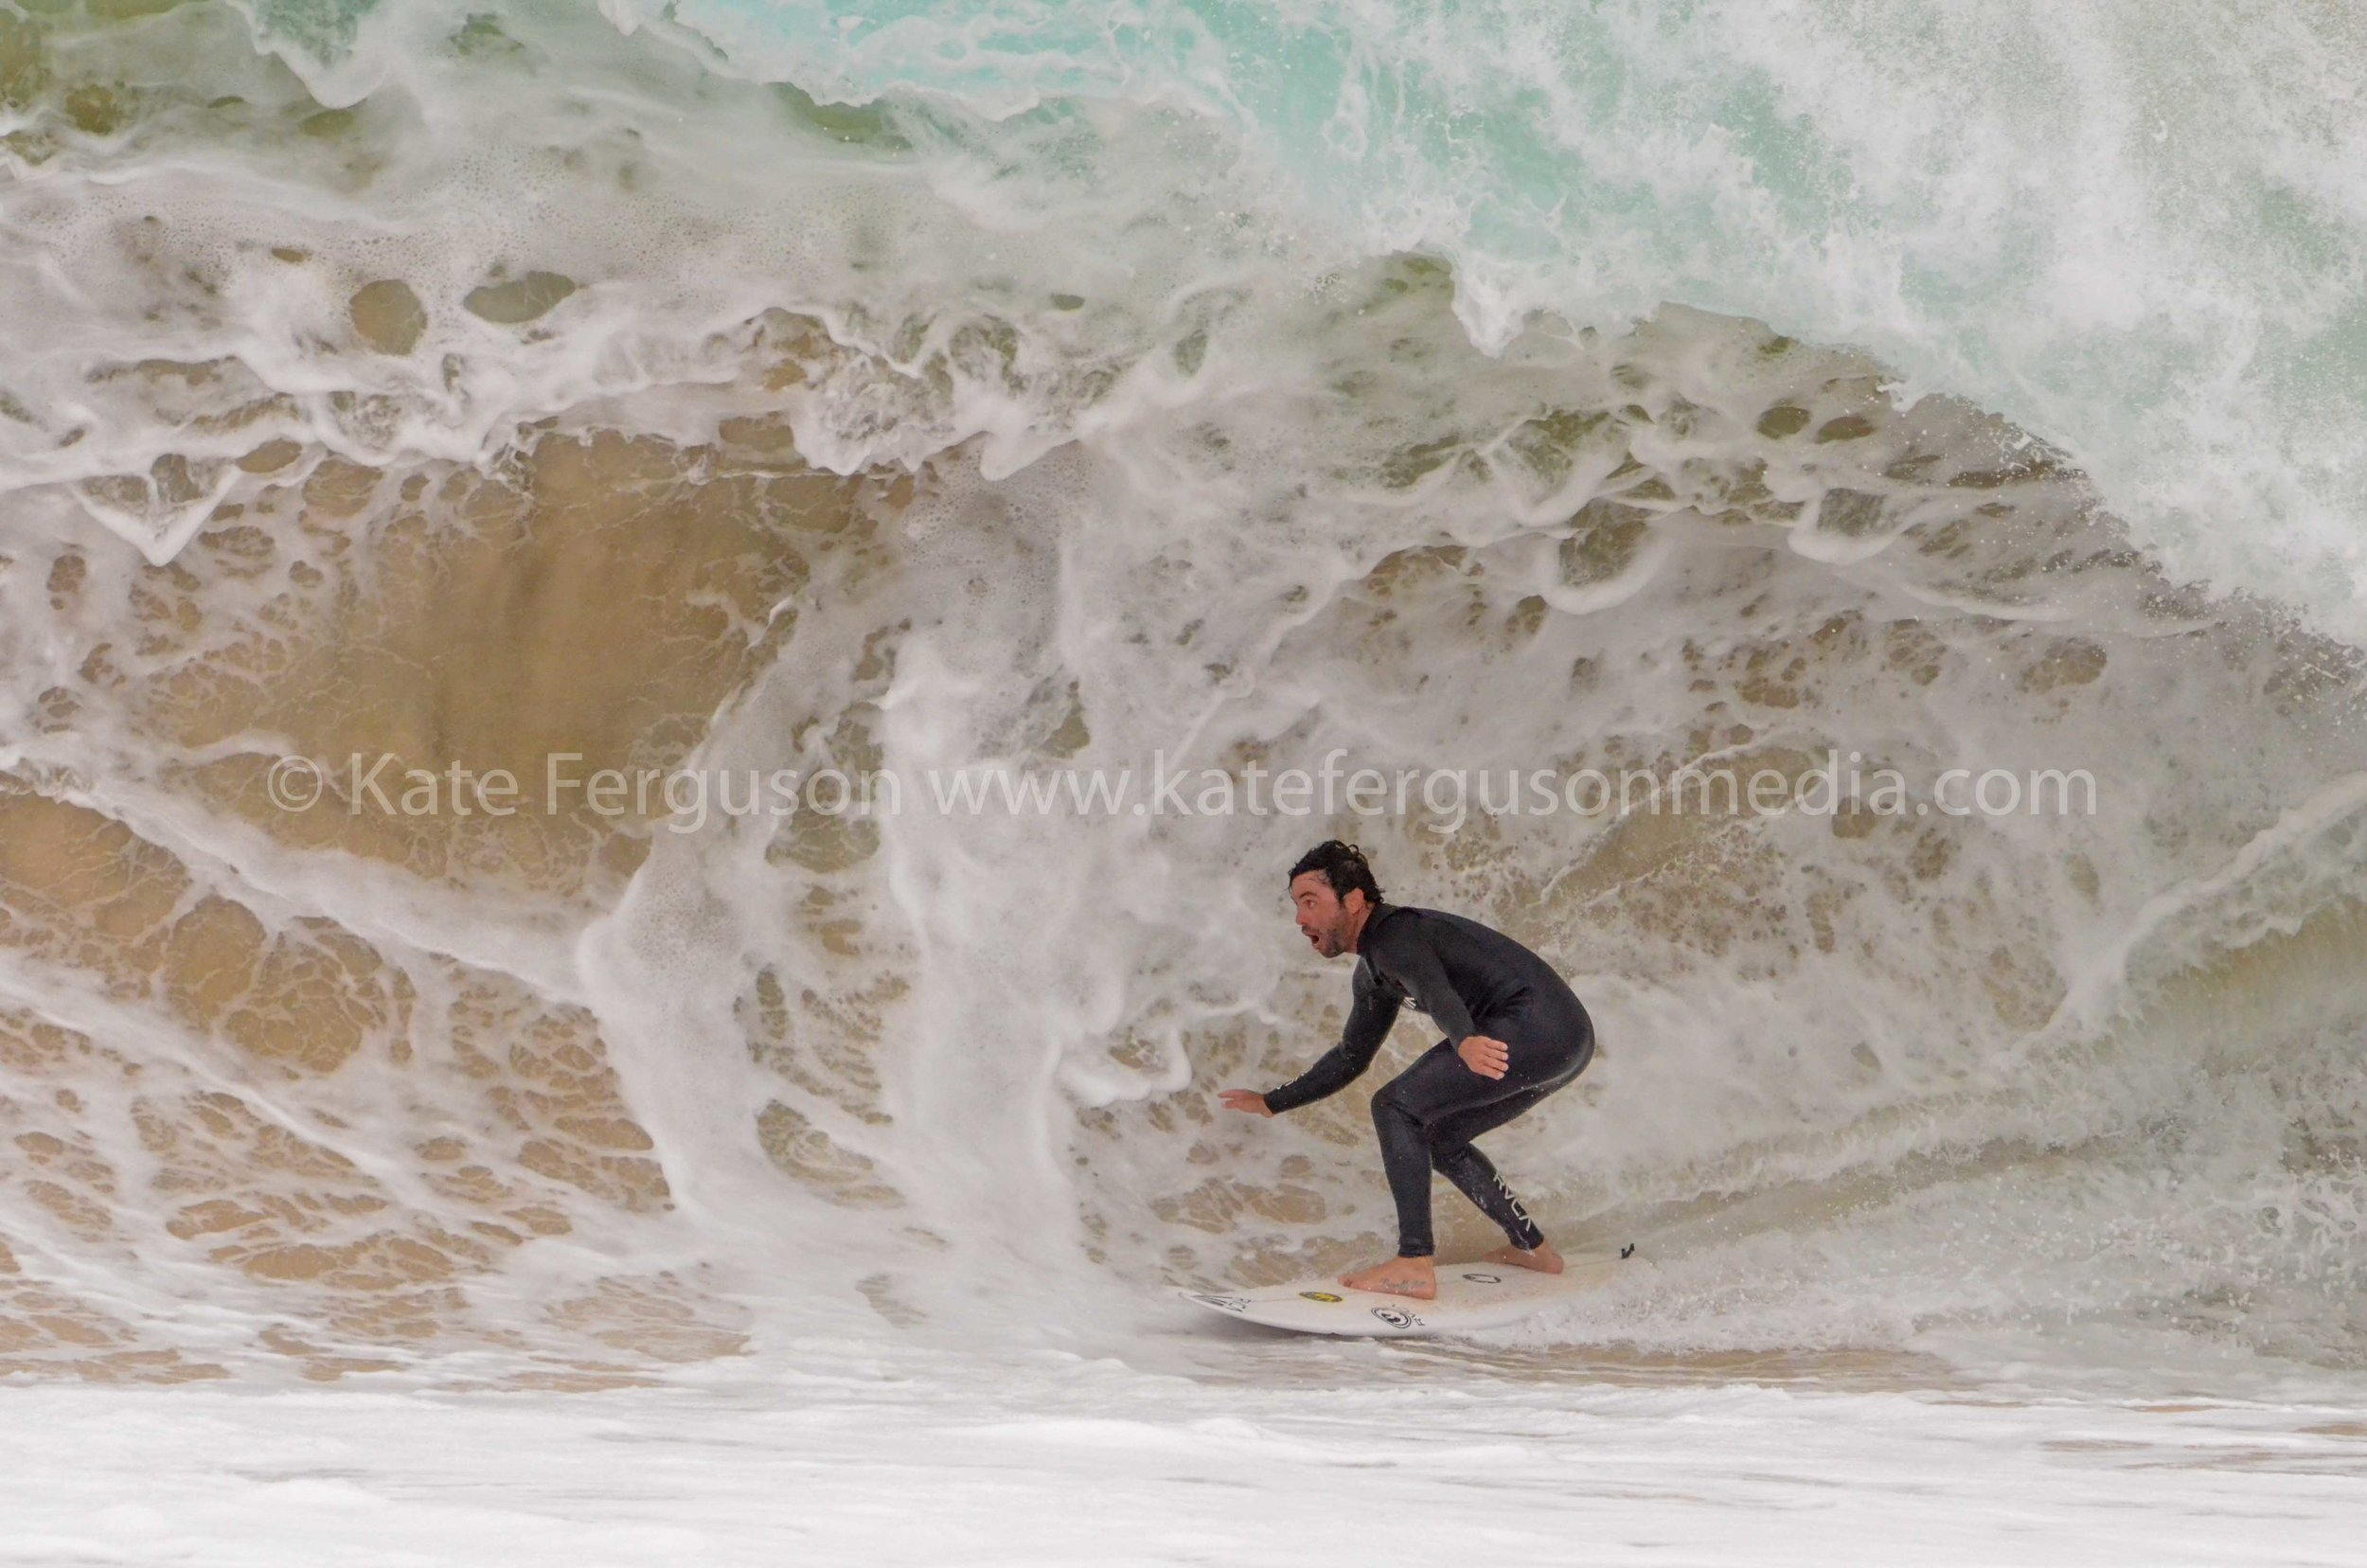 Frothing over Cyclone Marcus' swell in the South West.